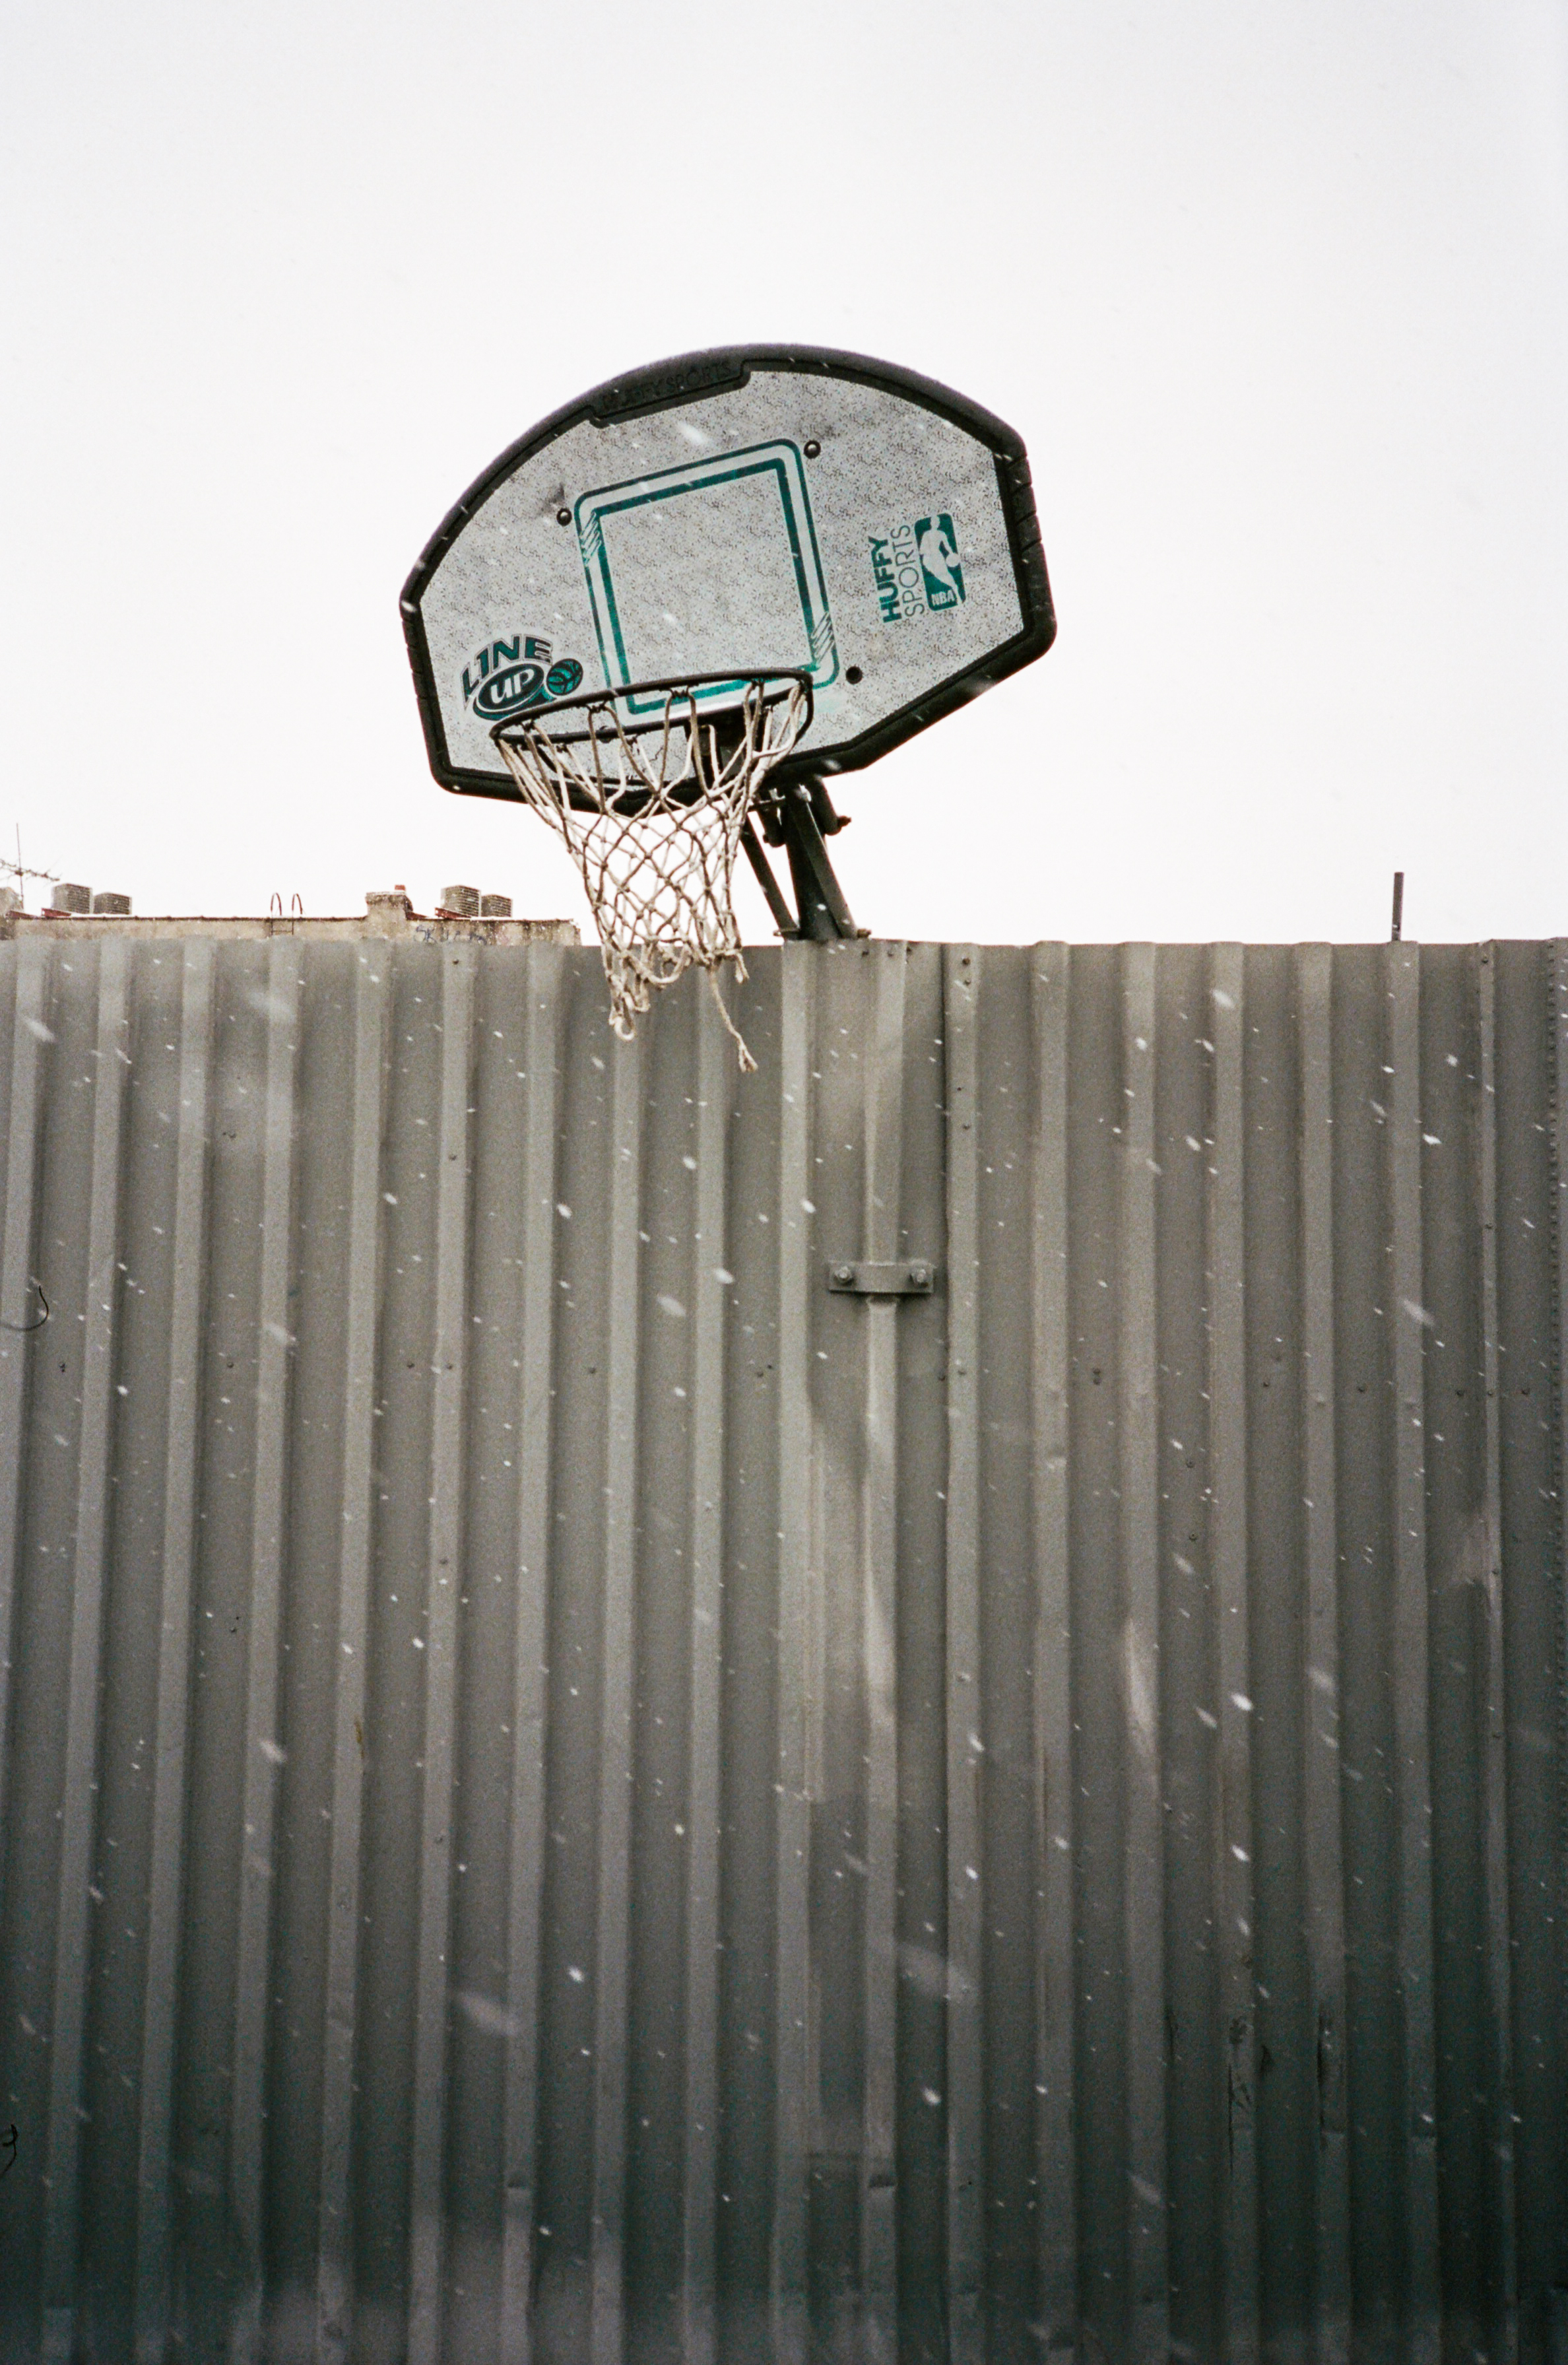 Hoops in NYC